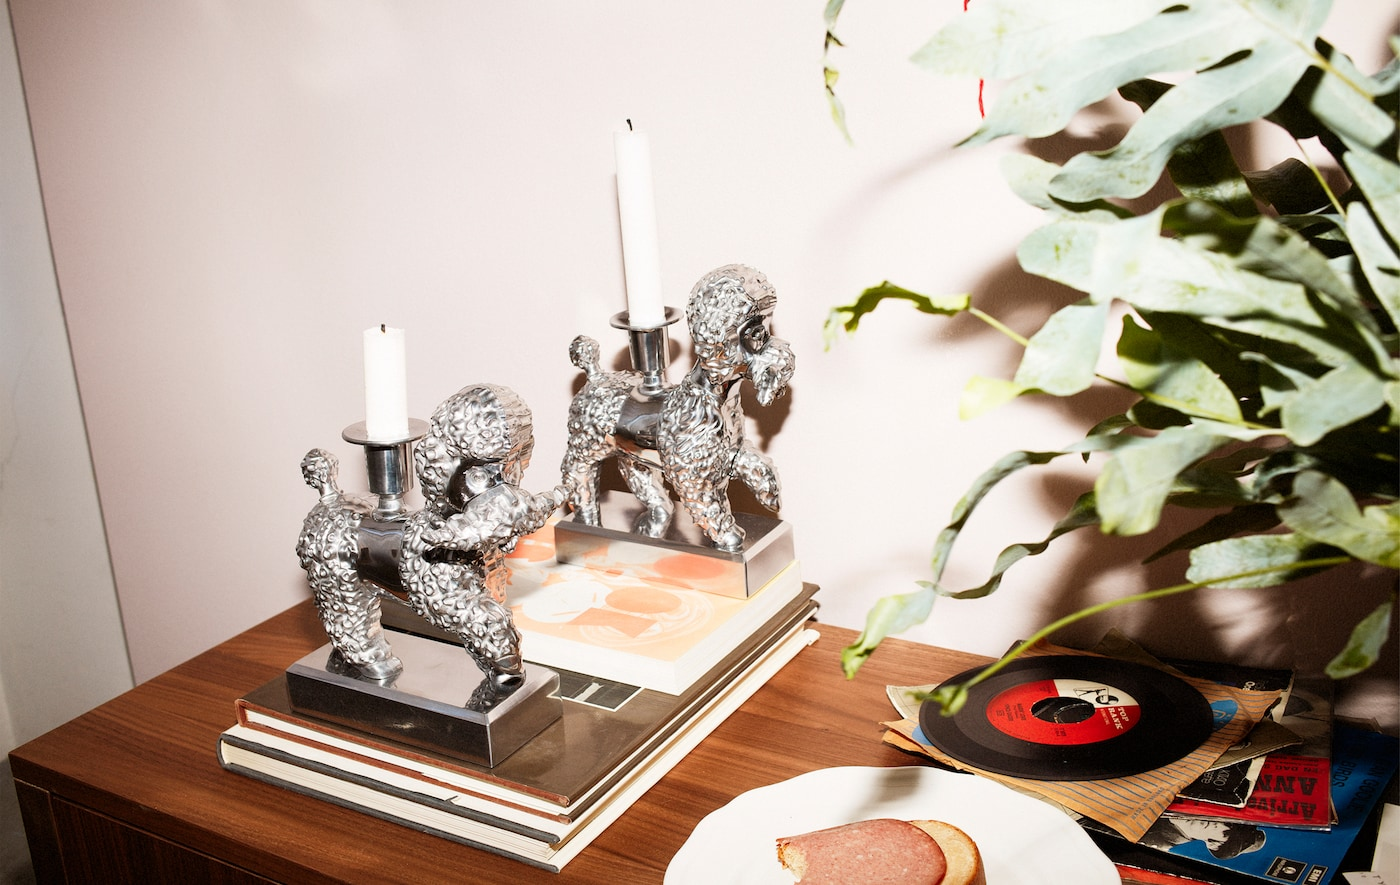 Two dog-shaped candlesticks, books and records on a sideboard.